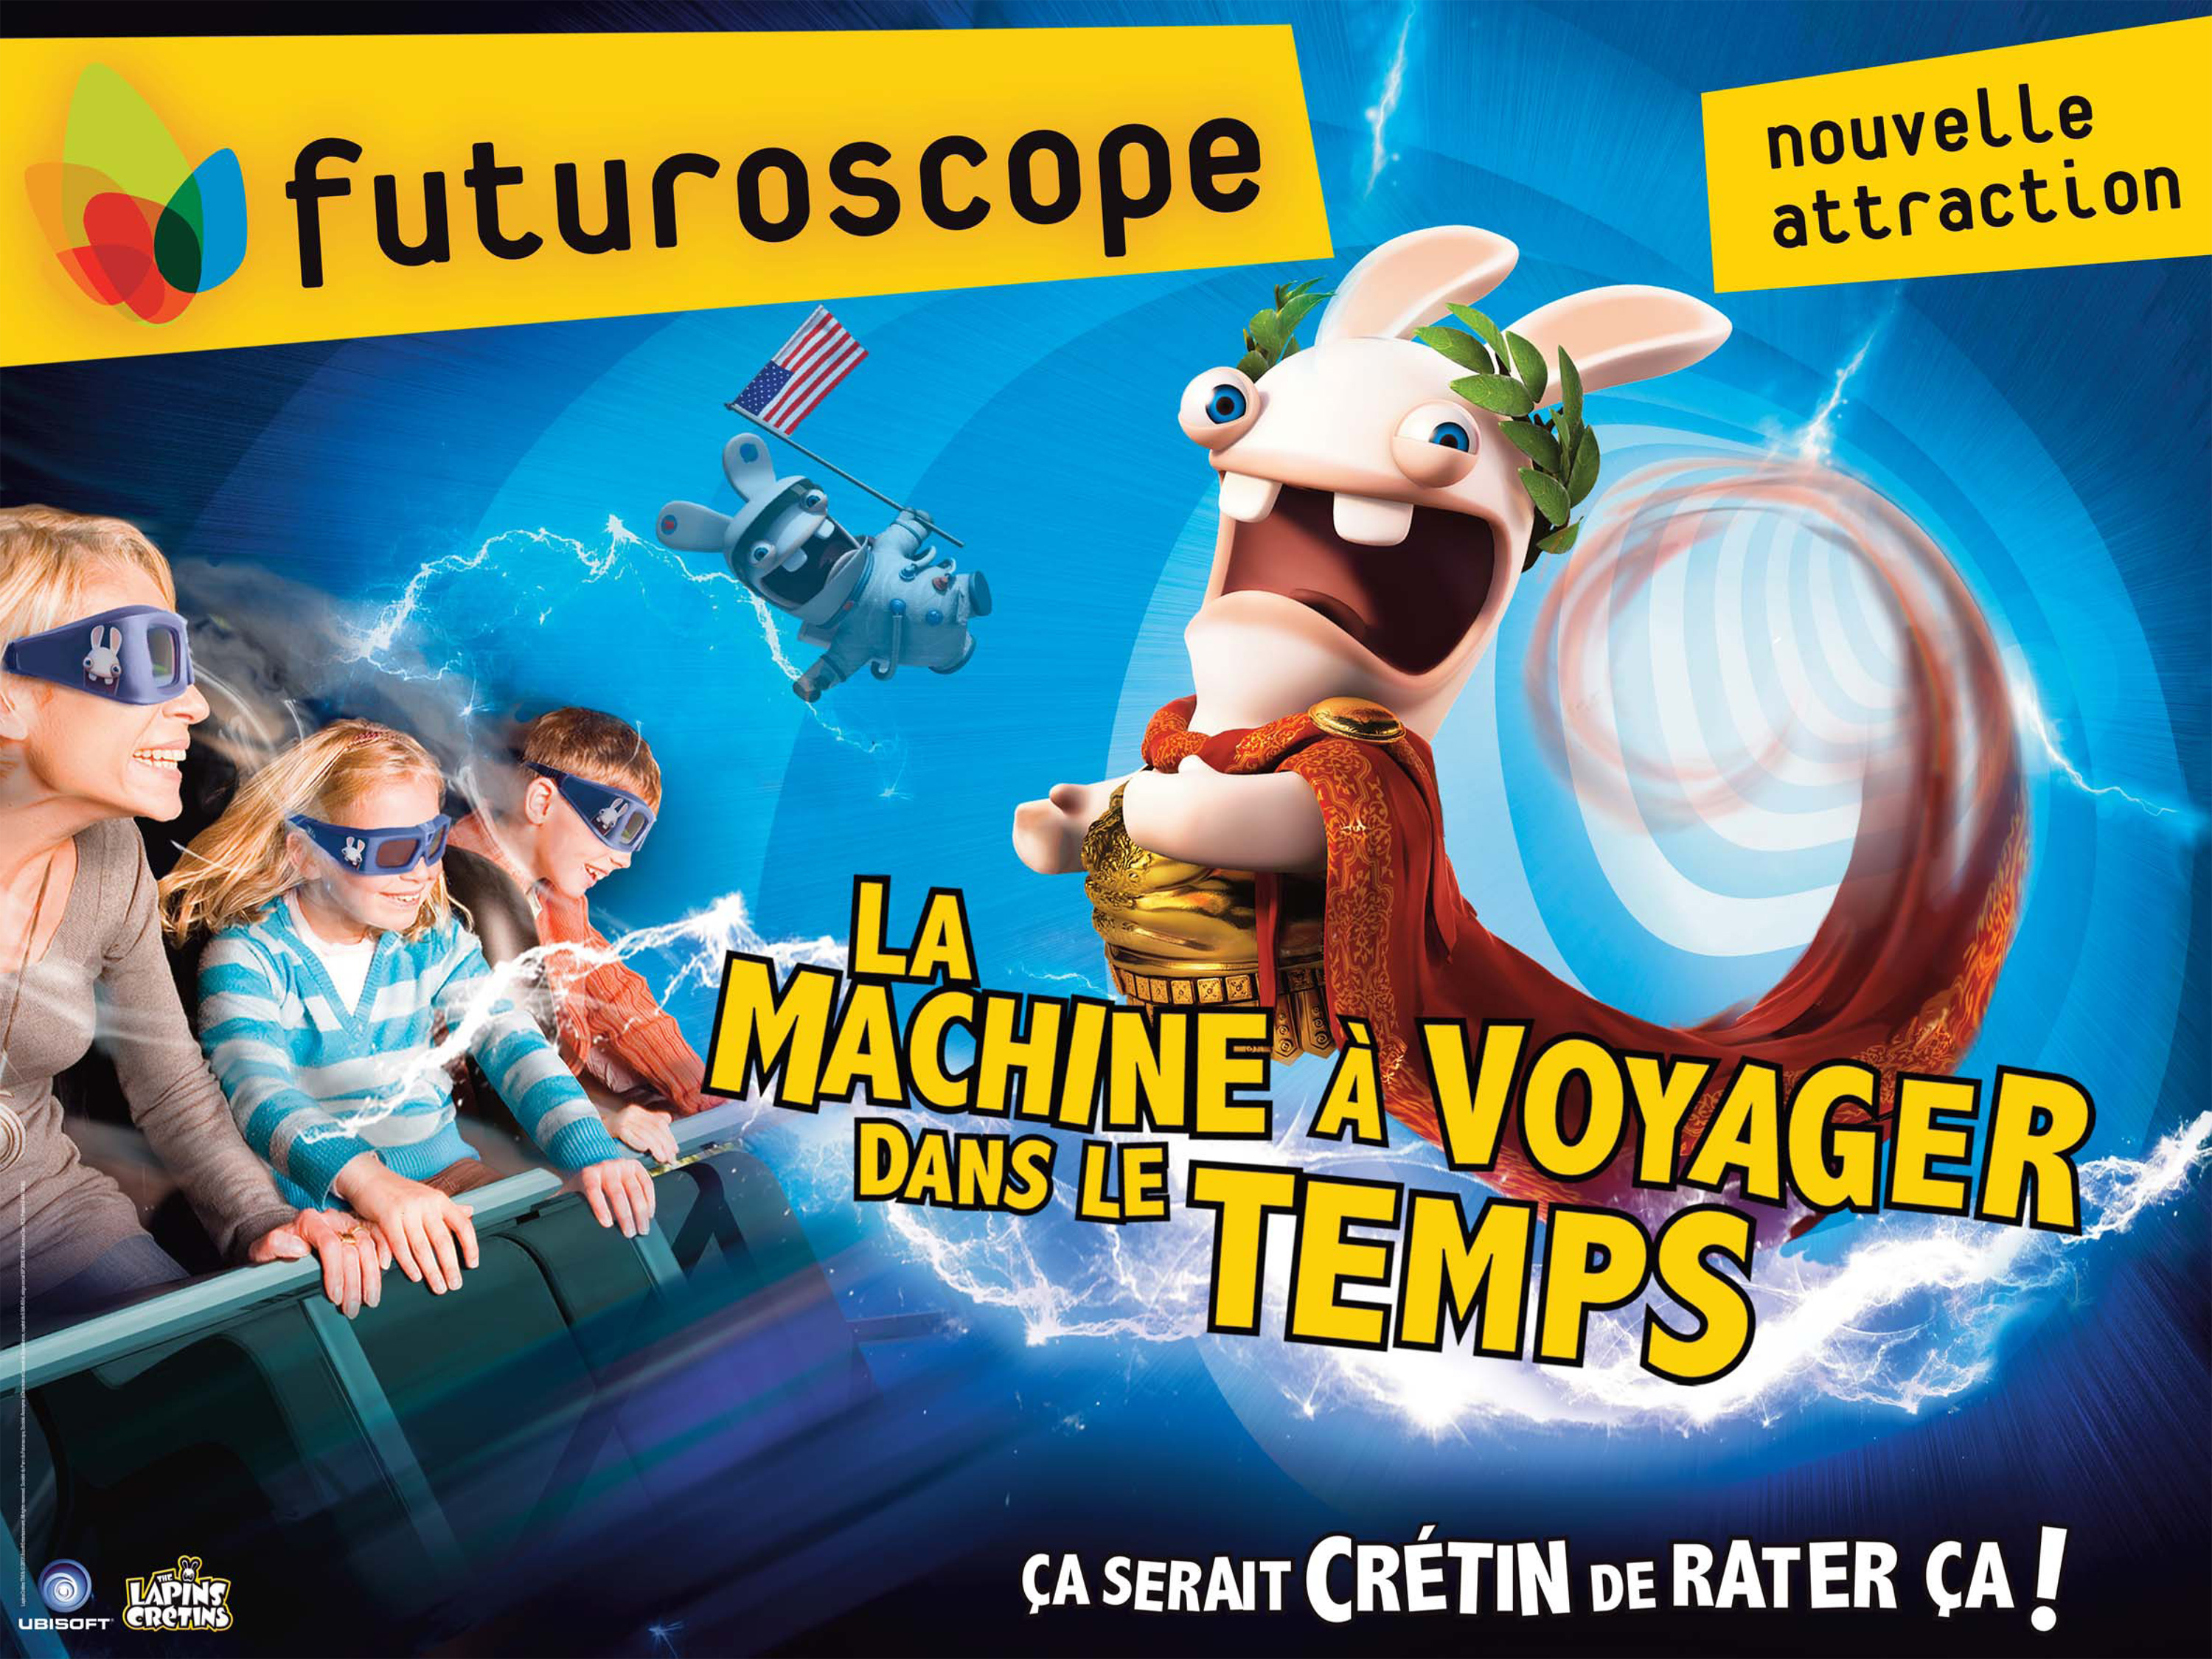 lapins-cretins-futuroscope-poitiers-attraction.jpg